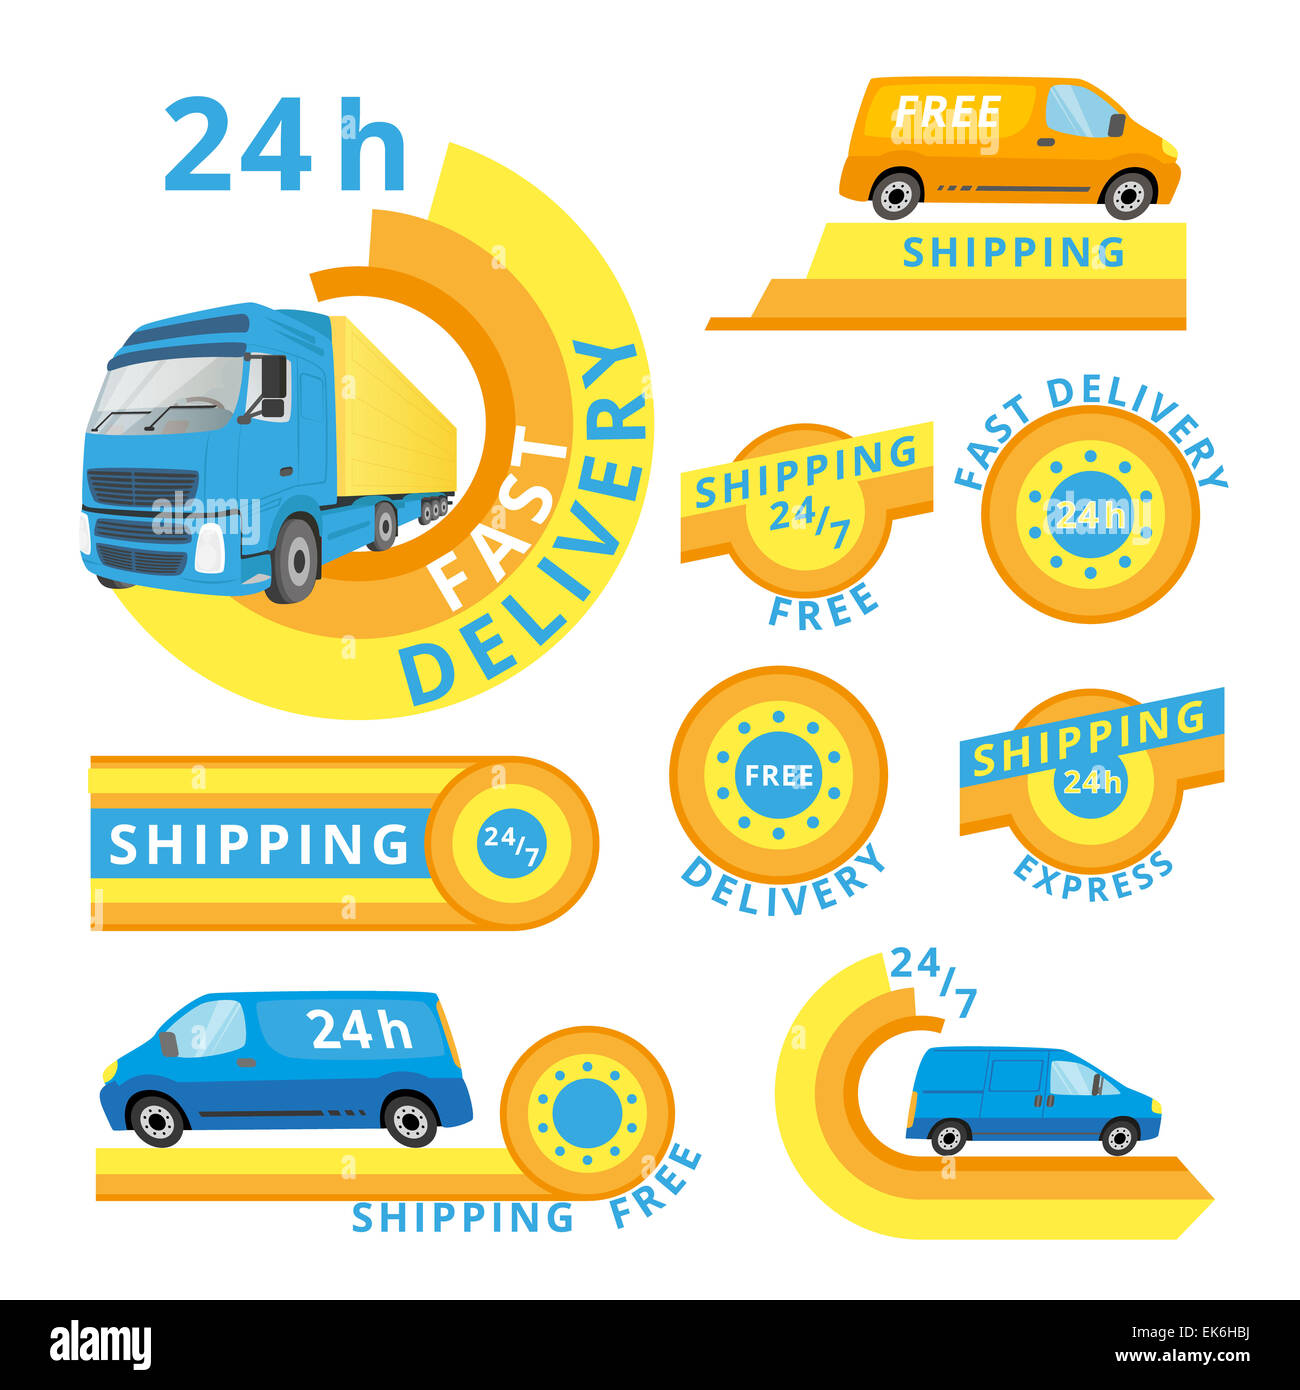 Delivery car set - Stock Image